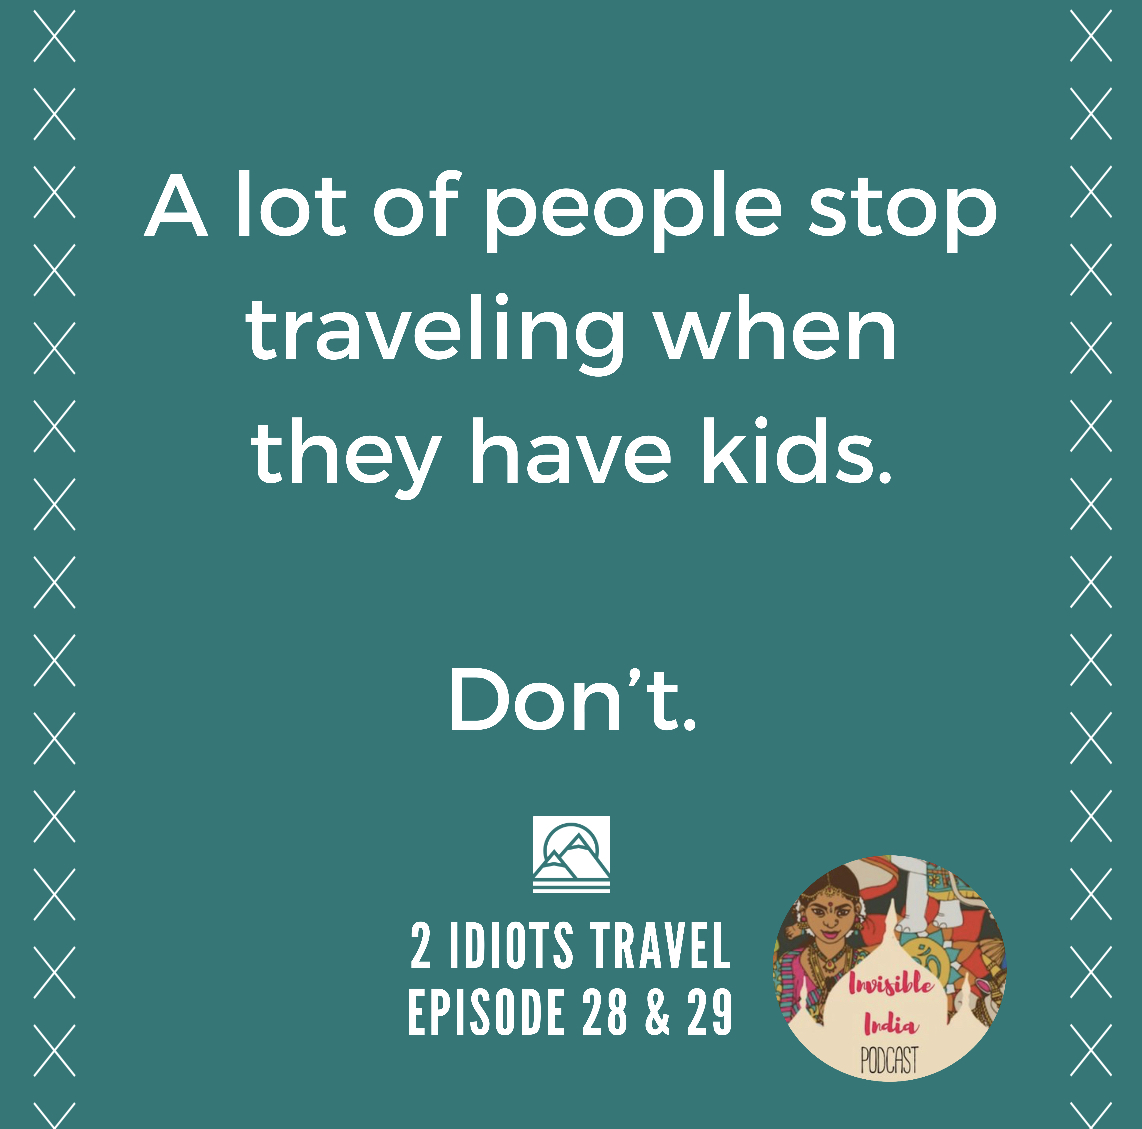 A lot of people stop traveling when they have kids.   I think a lot of the hiccups that occur just have to do with being a parent.   Episode 29-link in profile  #GapYear #travelblog #travelwithkids #travelingwithkids #travelfamily #kidswhotravelpic.twitter.com/3ZargbWrMr